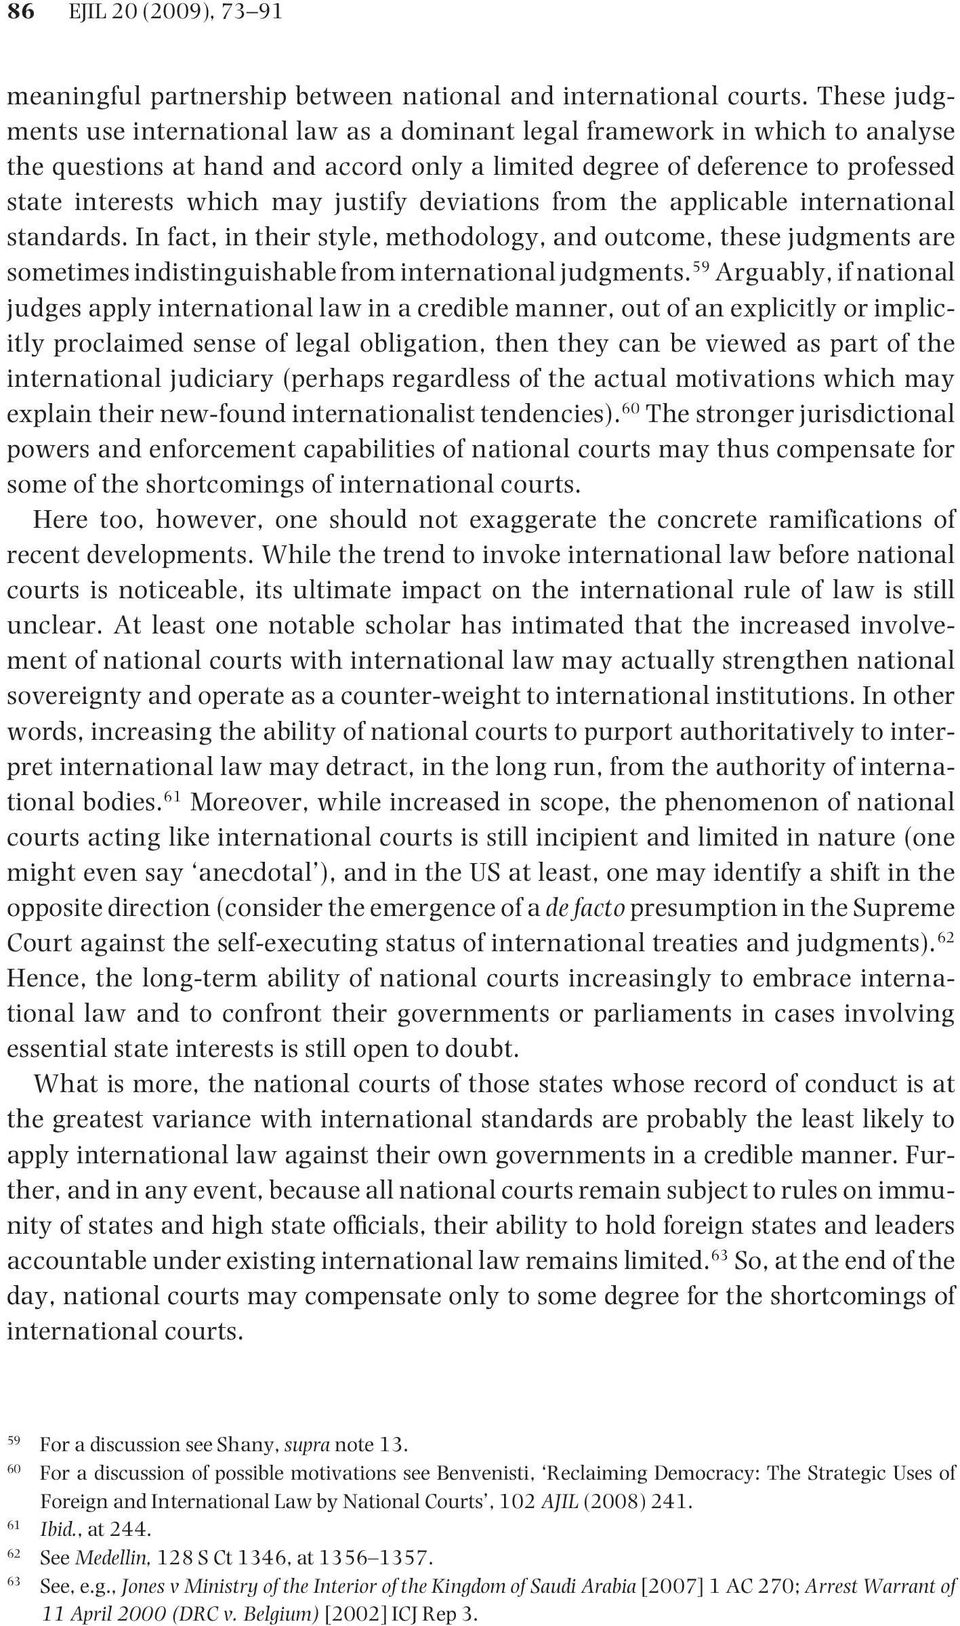 justify deviations from the applicable international standards. In fact, in their style, methodology, and outcome, these judgments are sometimes indistinguishable from international judgments.